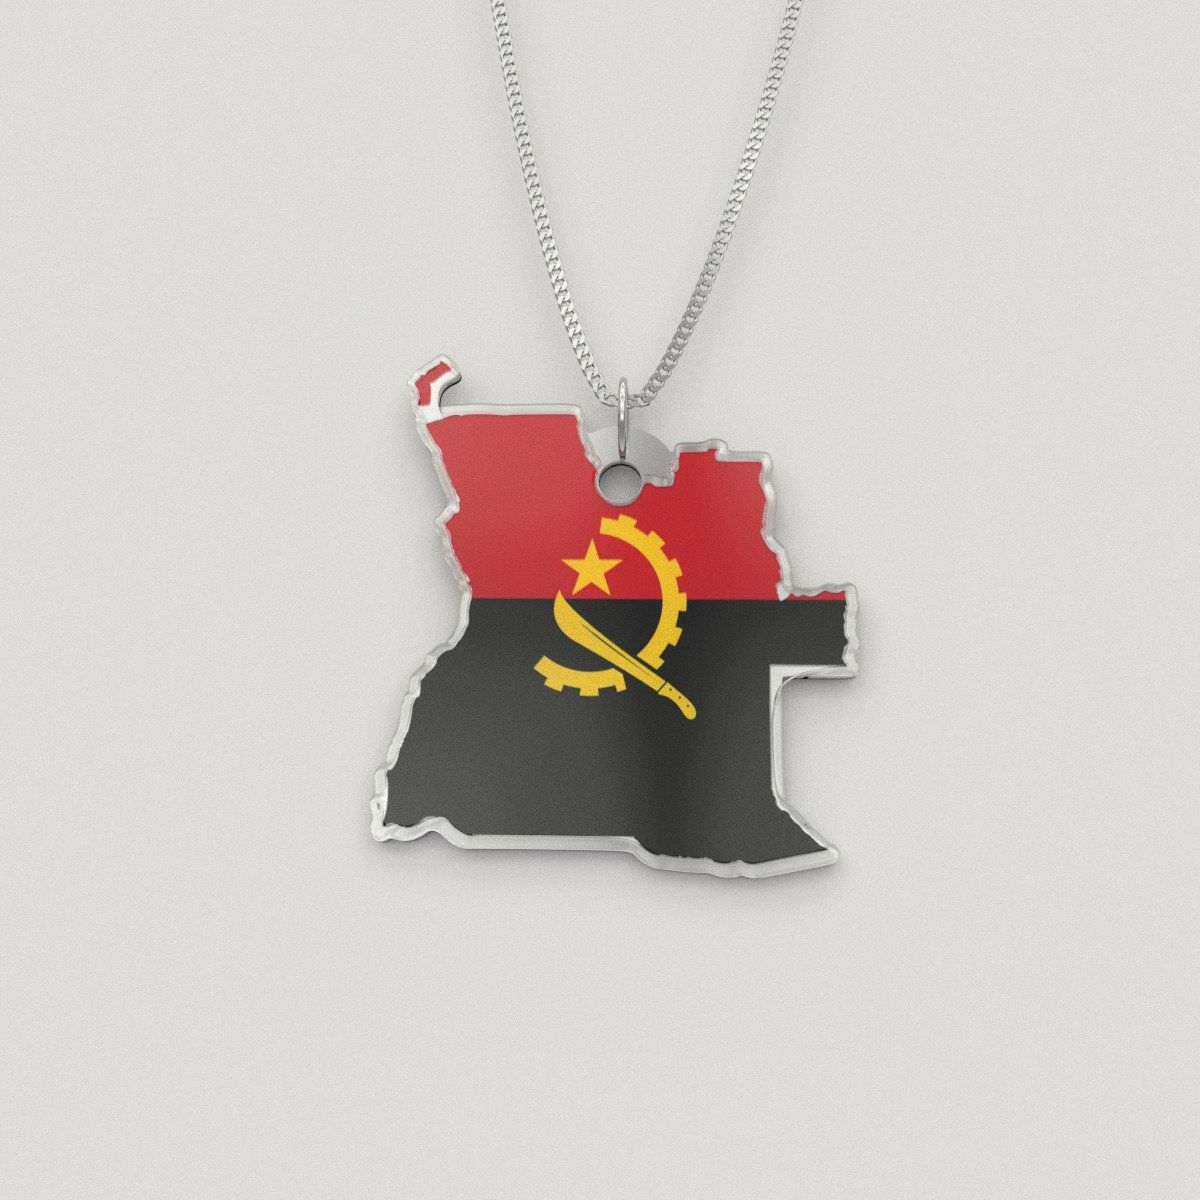 Custom Engraving Angola Necklace Angolan Flag Angola Map Etsy In 2020 Big Sister Presents Silver Chain Style Bridesmaids Gifts